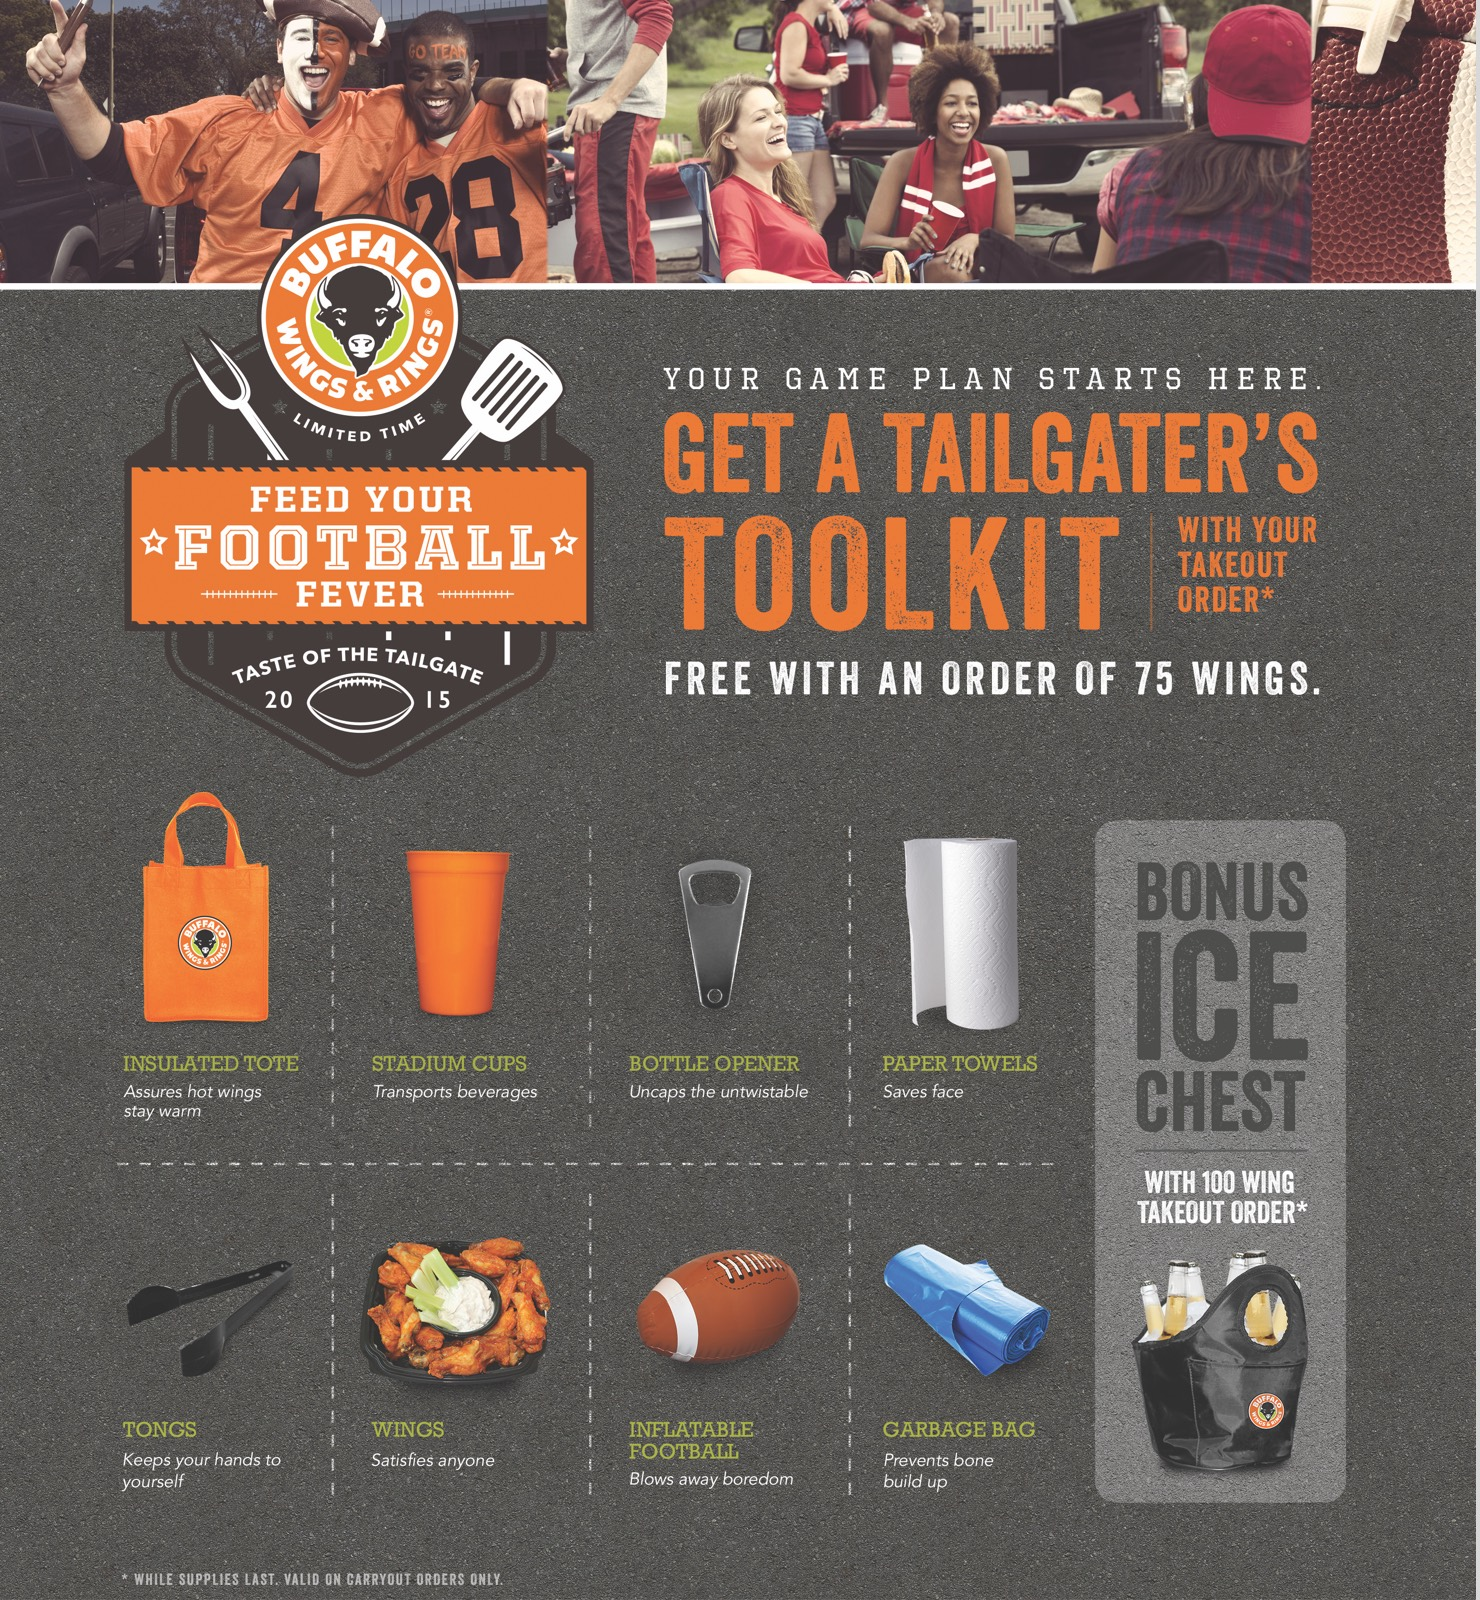 Buffalo Wings & Rings - Promos - Tailgate Toolkit